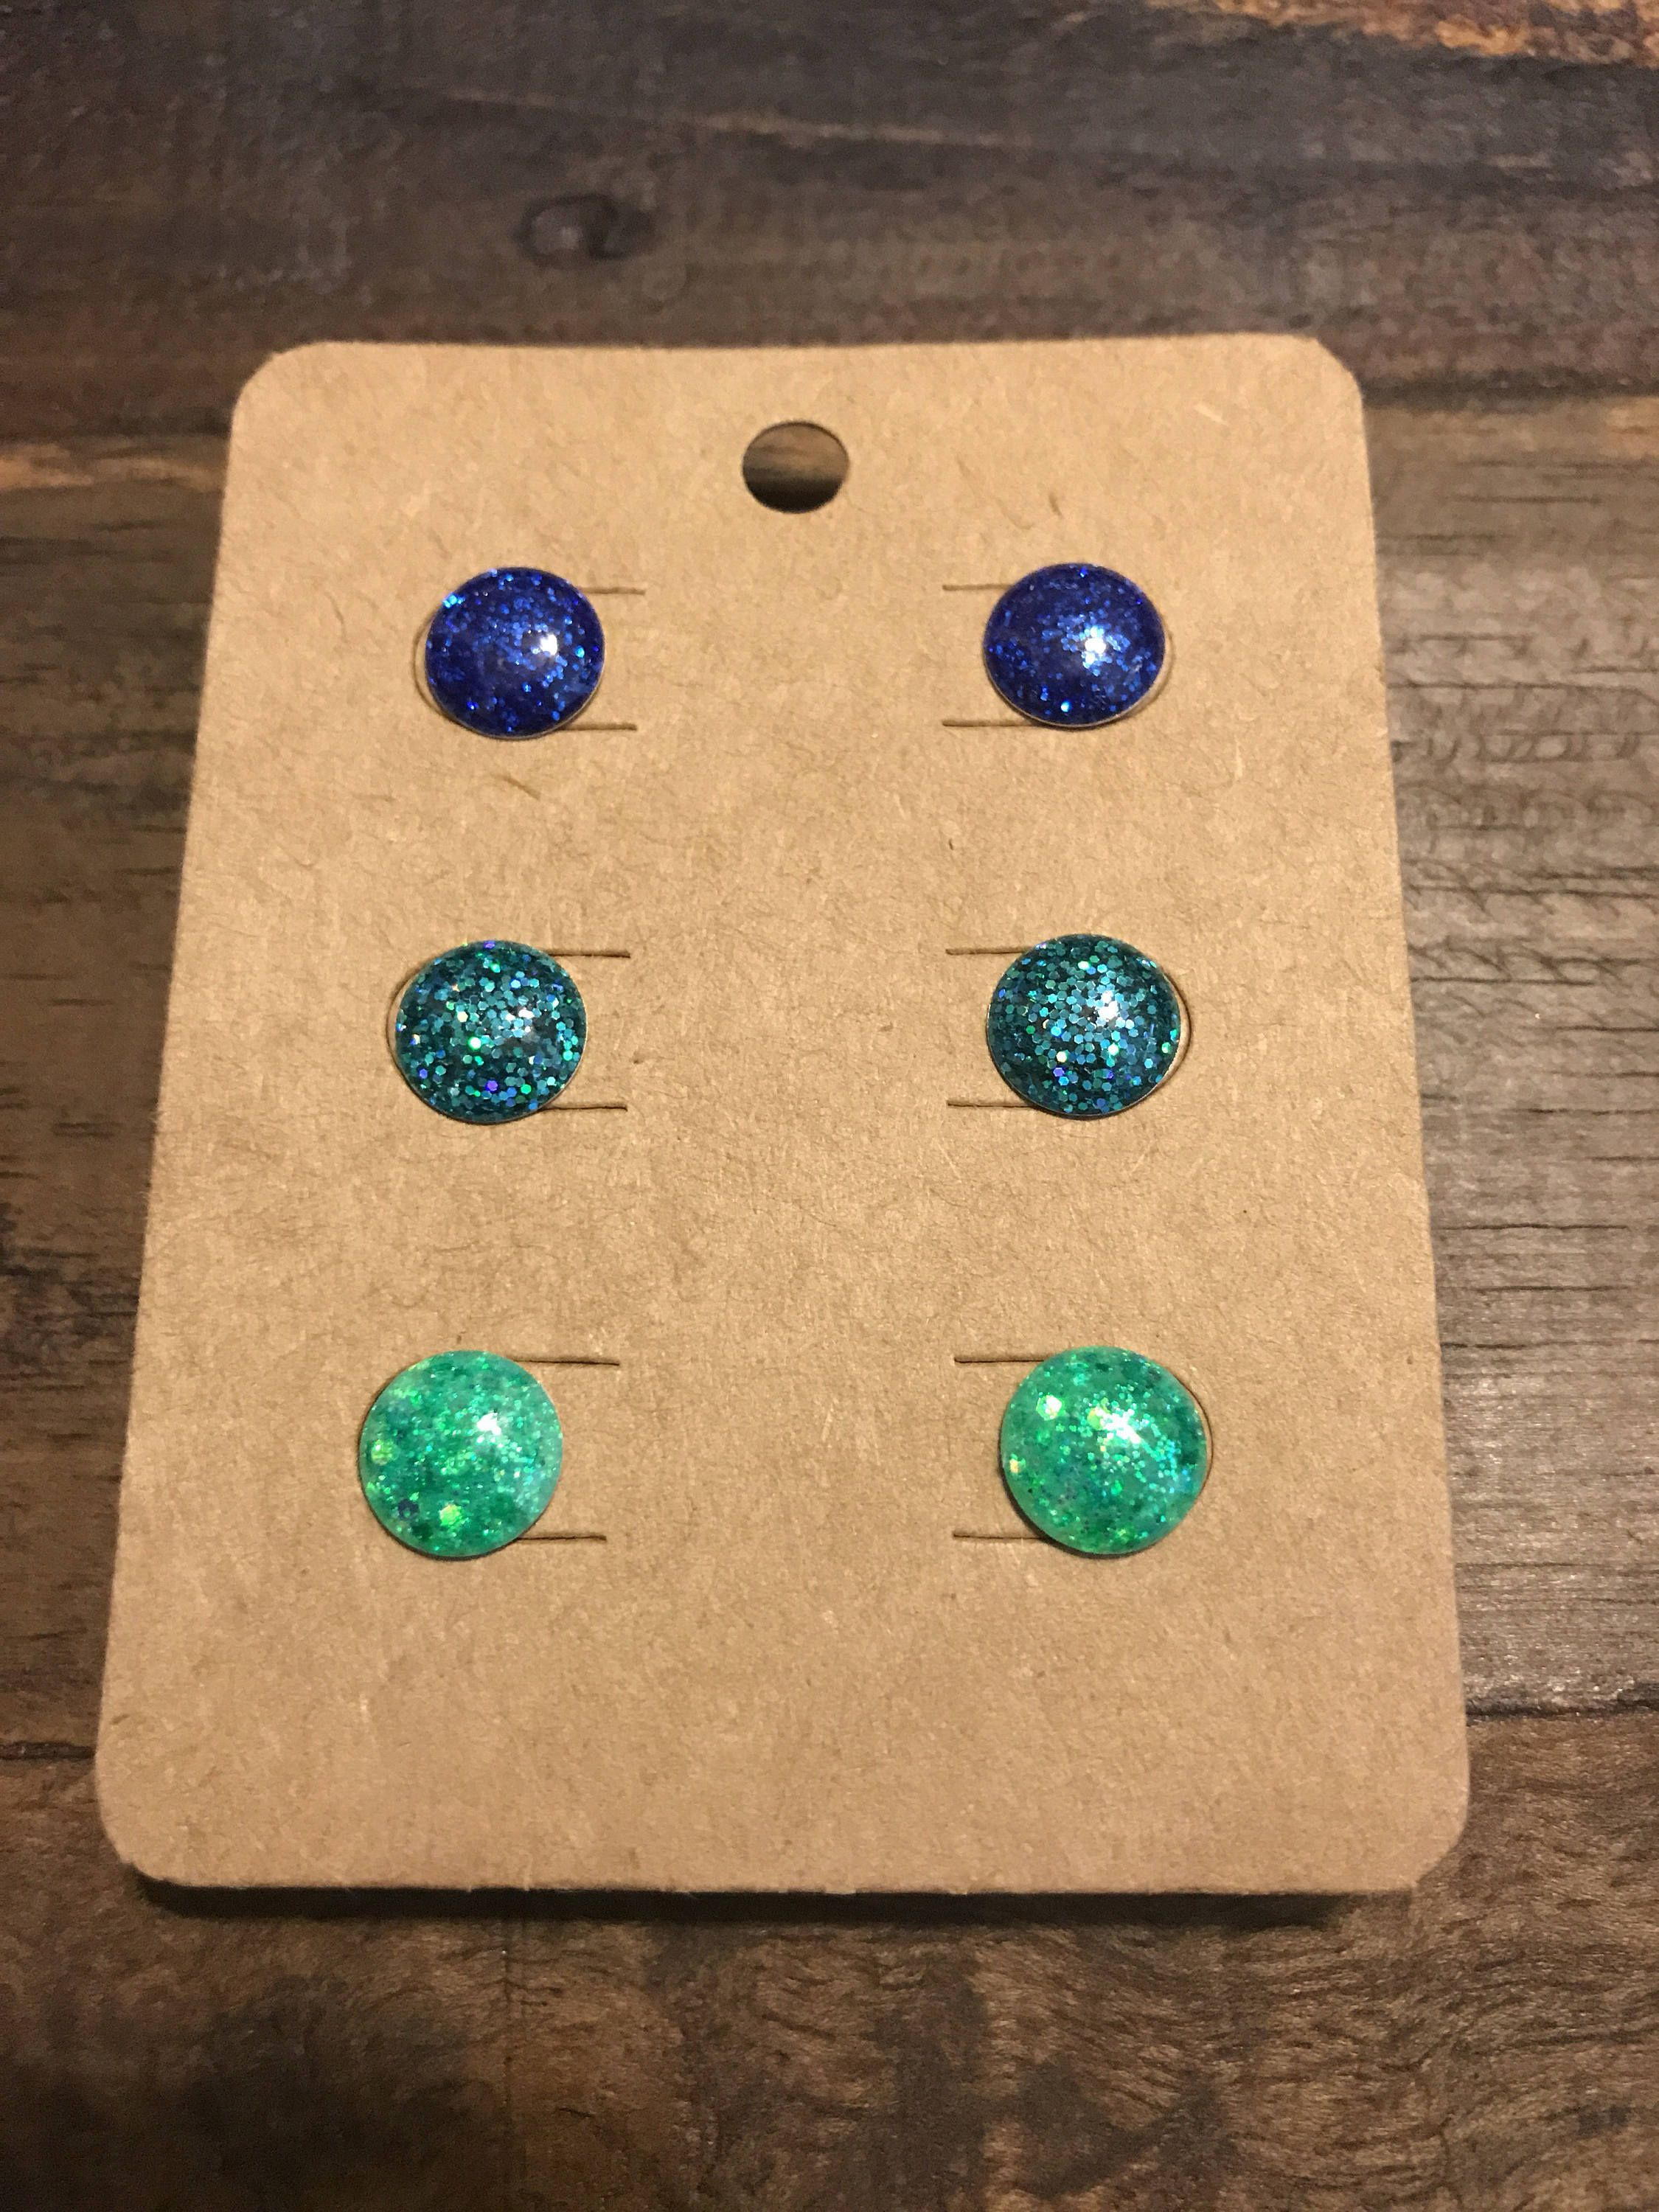 how to make resin earrings with glitter